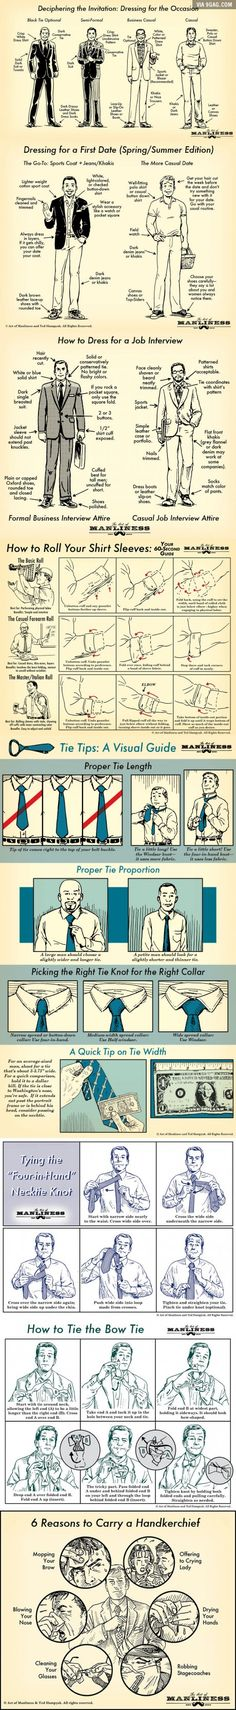 Men's Guide to Dressing Properly